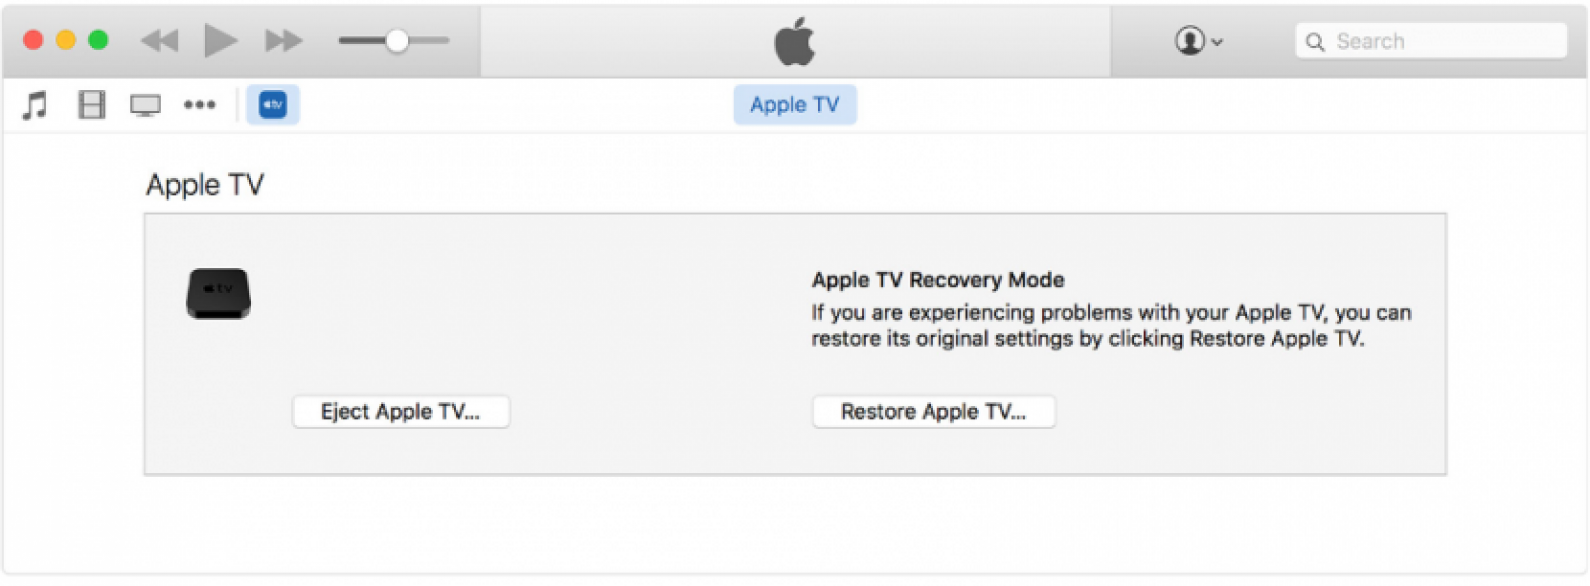 Apple TV Troubleshooting: How to Reboot, Restart, and Reset